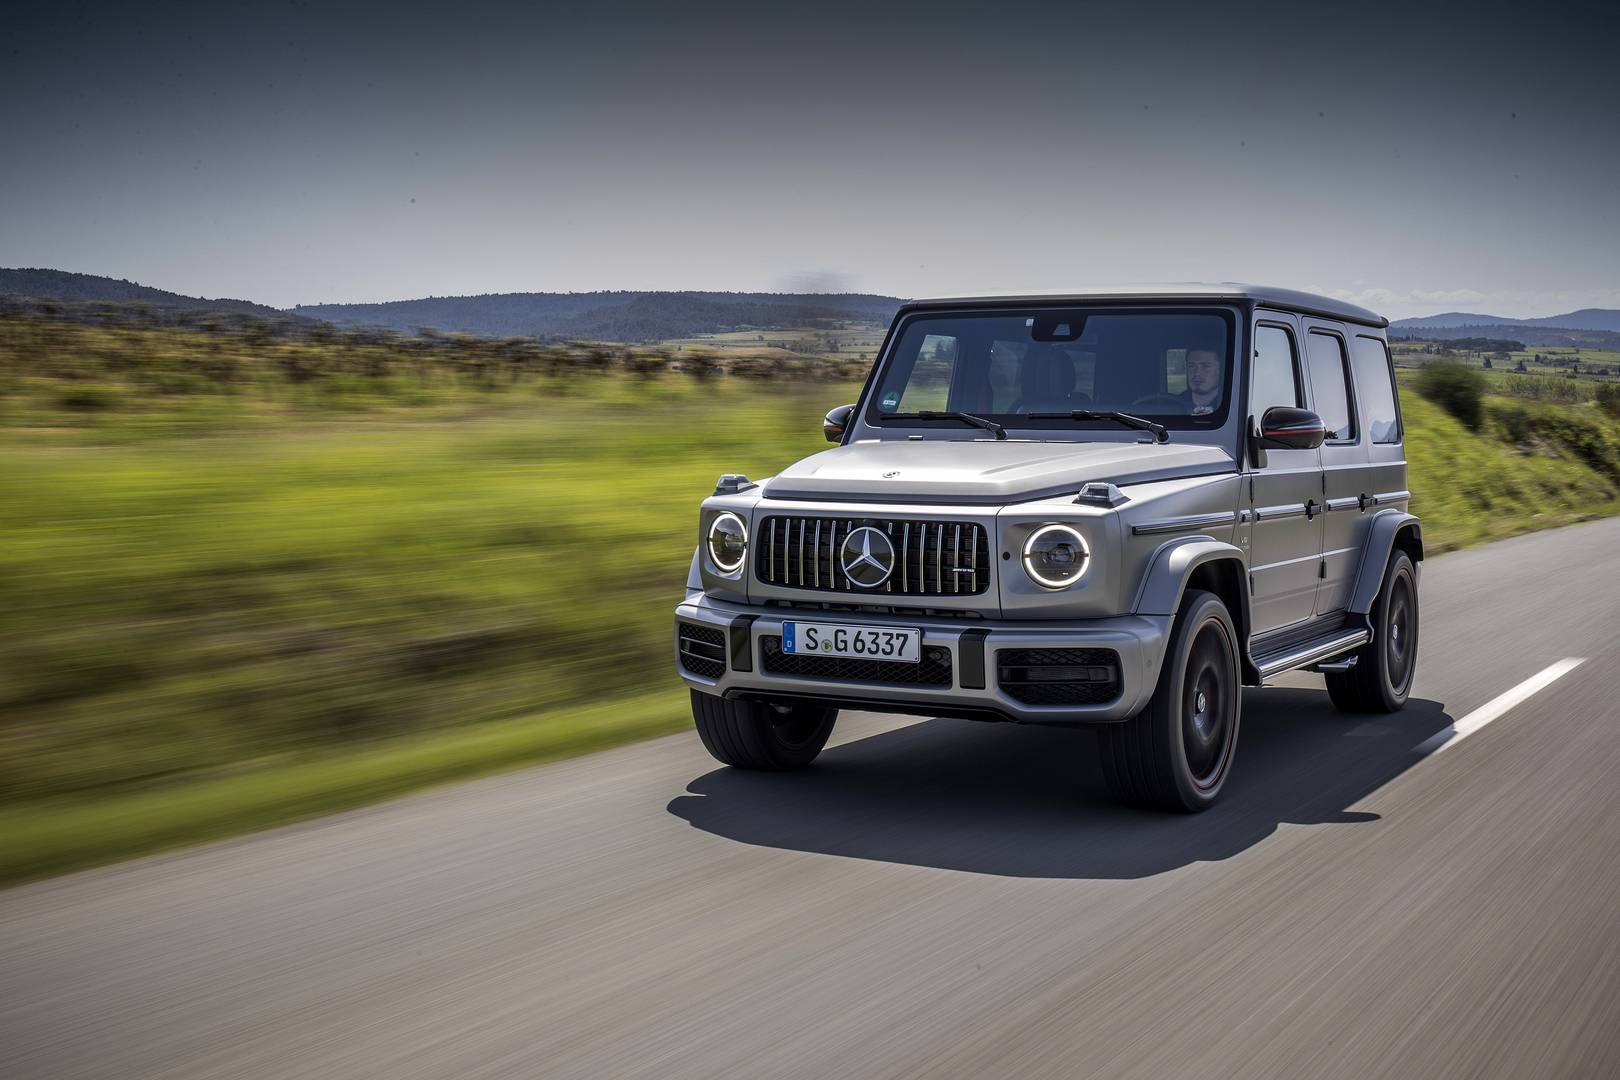 Mercedes G63 2018 >> 2019 Mercedes-Benz G500 & G63 AMG Review - GTspirit